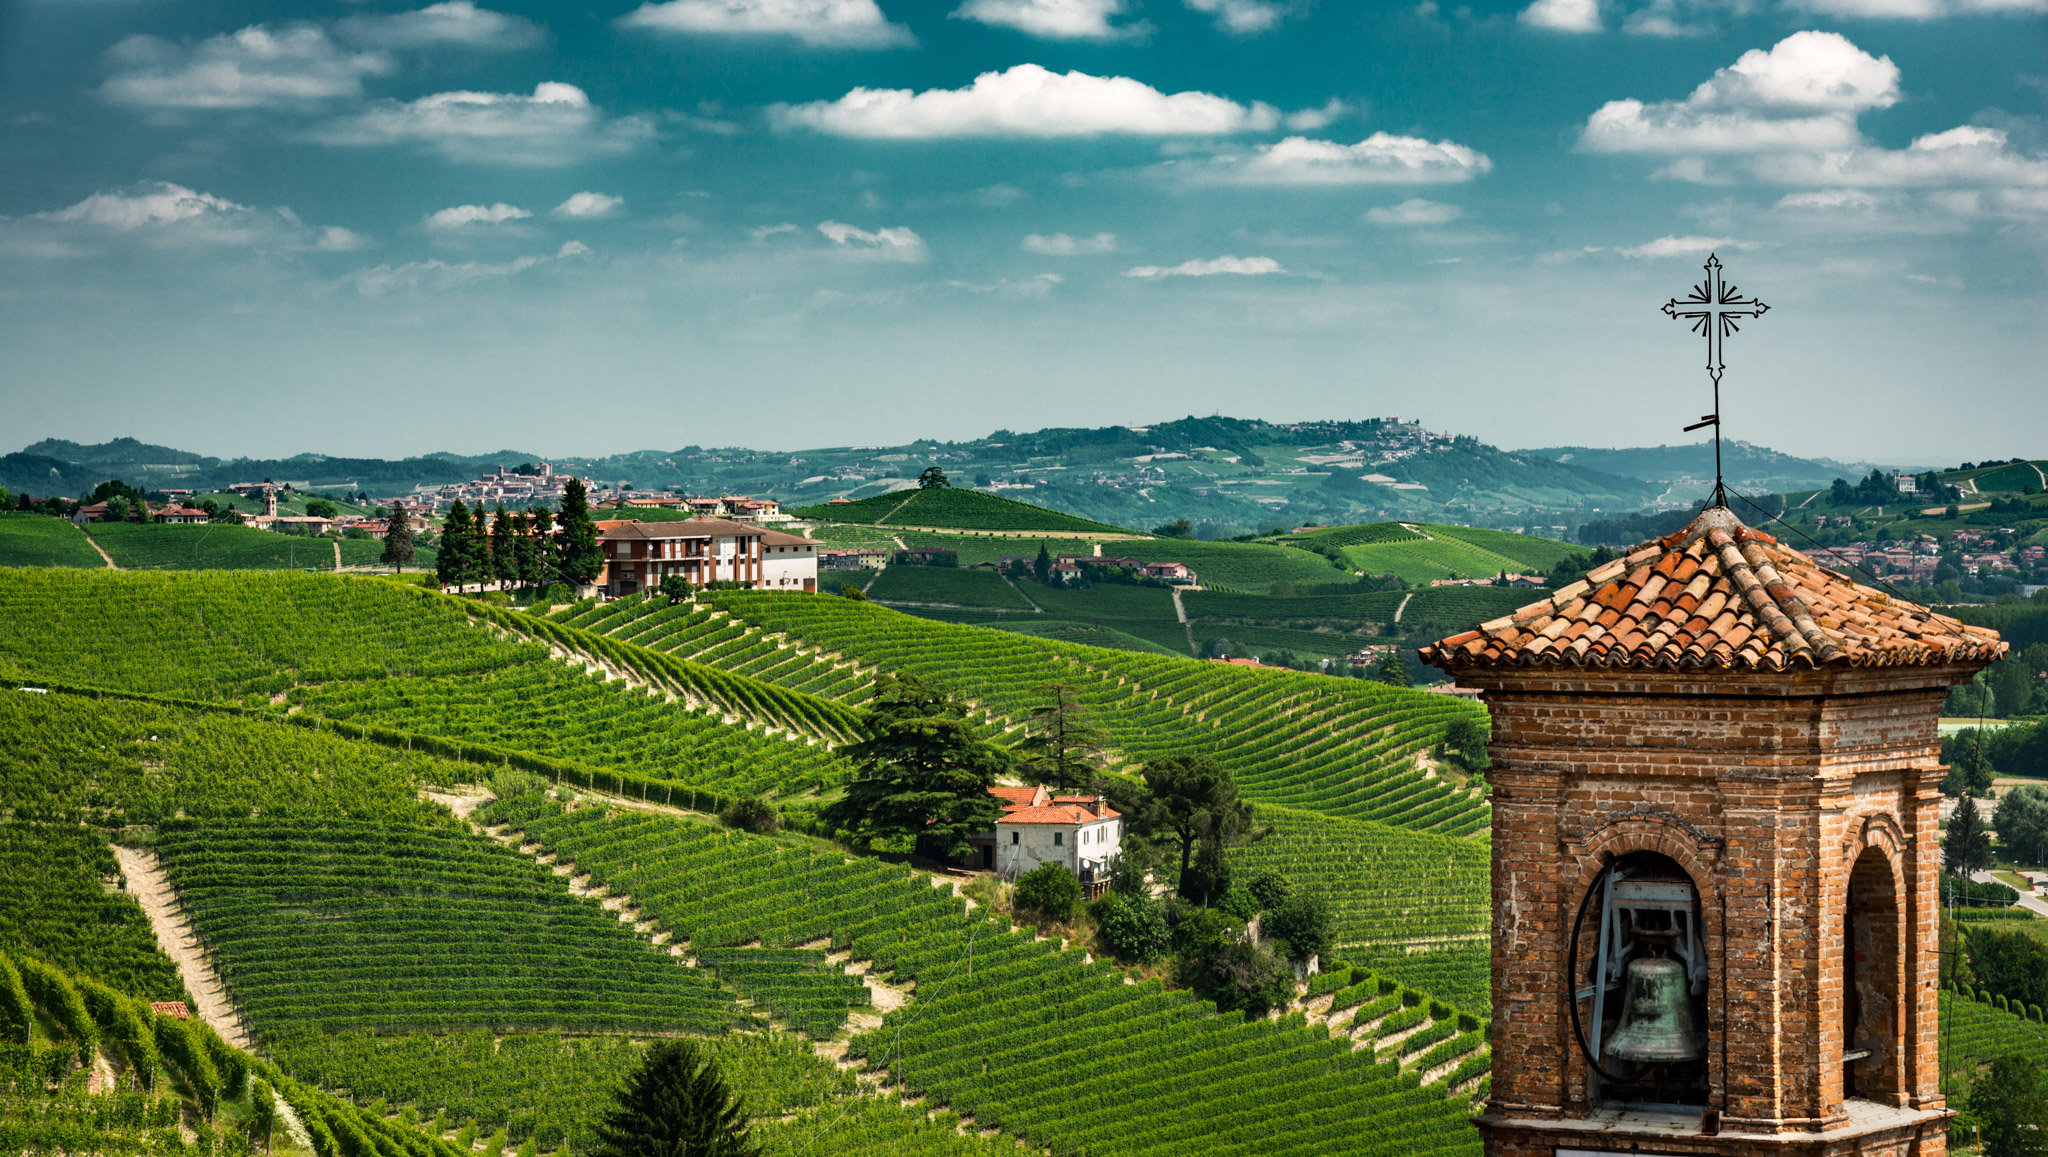 Italy : Piedmont : Clock tower, Cannubi vineyard, and il Cedro in the distance